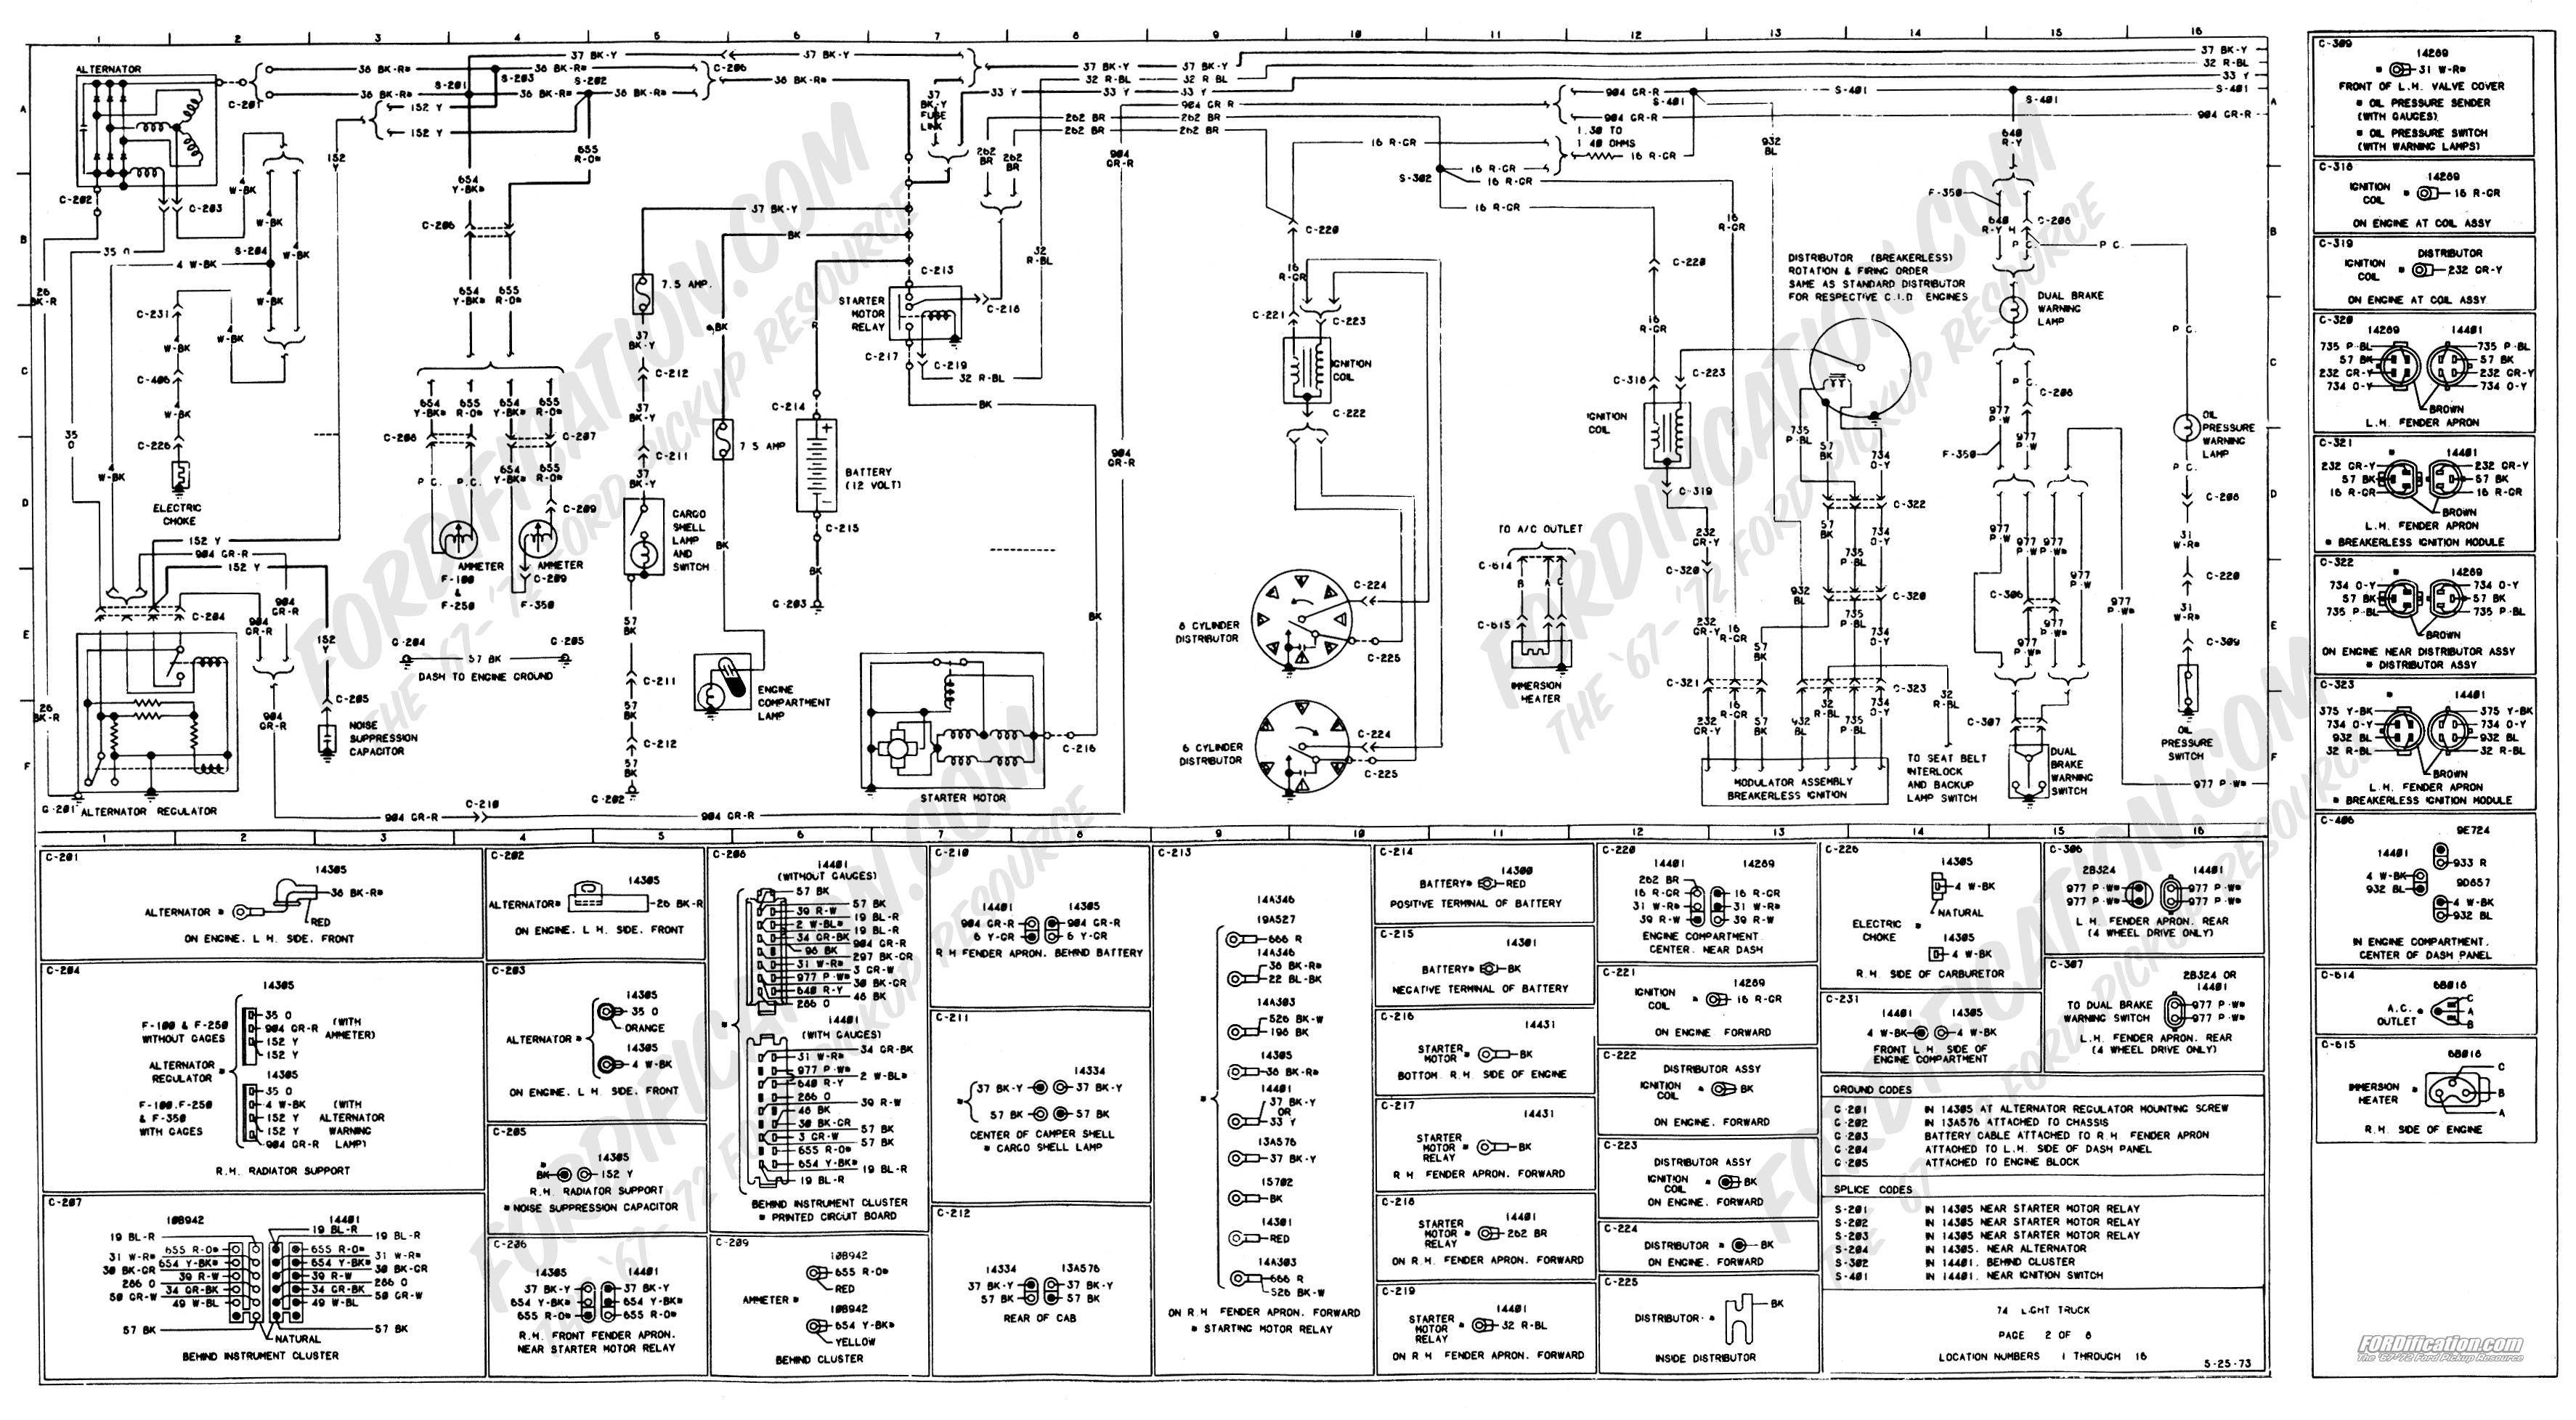 1978 ford truck wiring schematic Download-[Page 02] 4-t